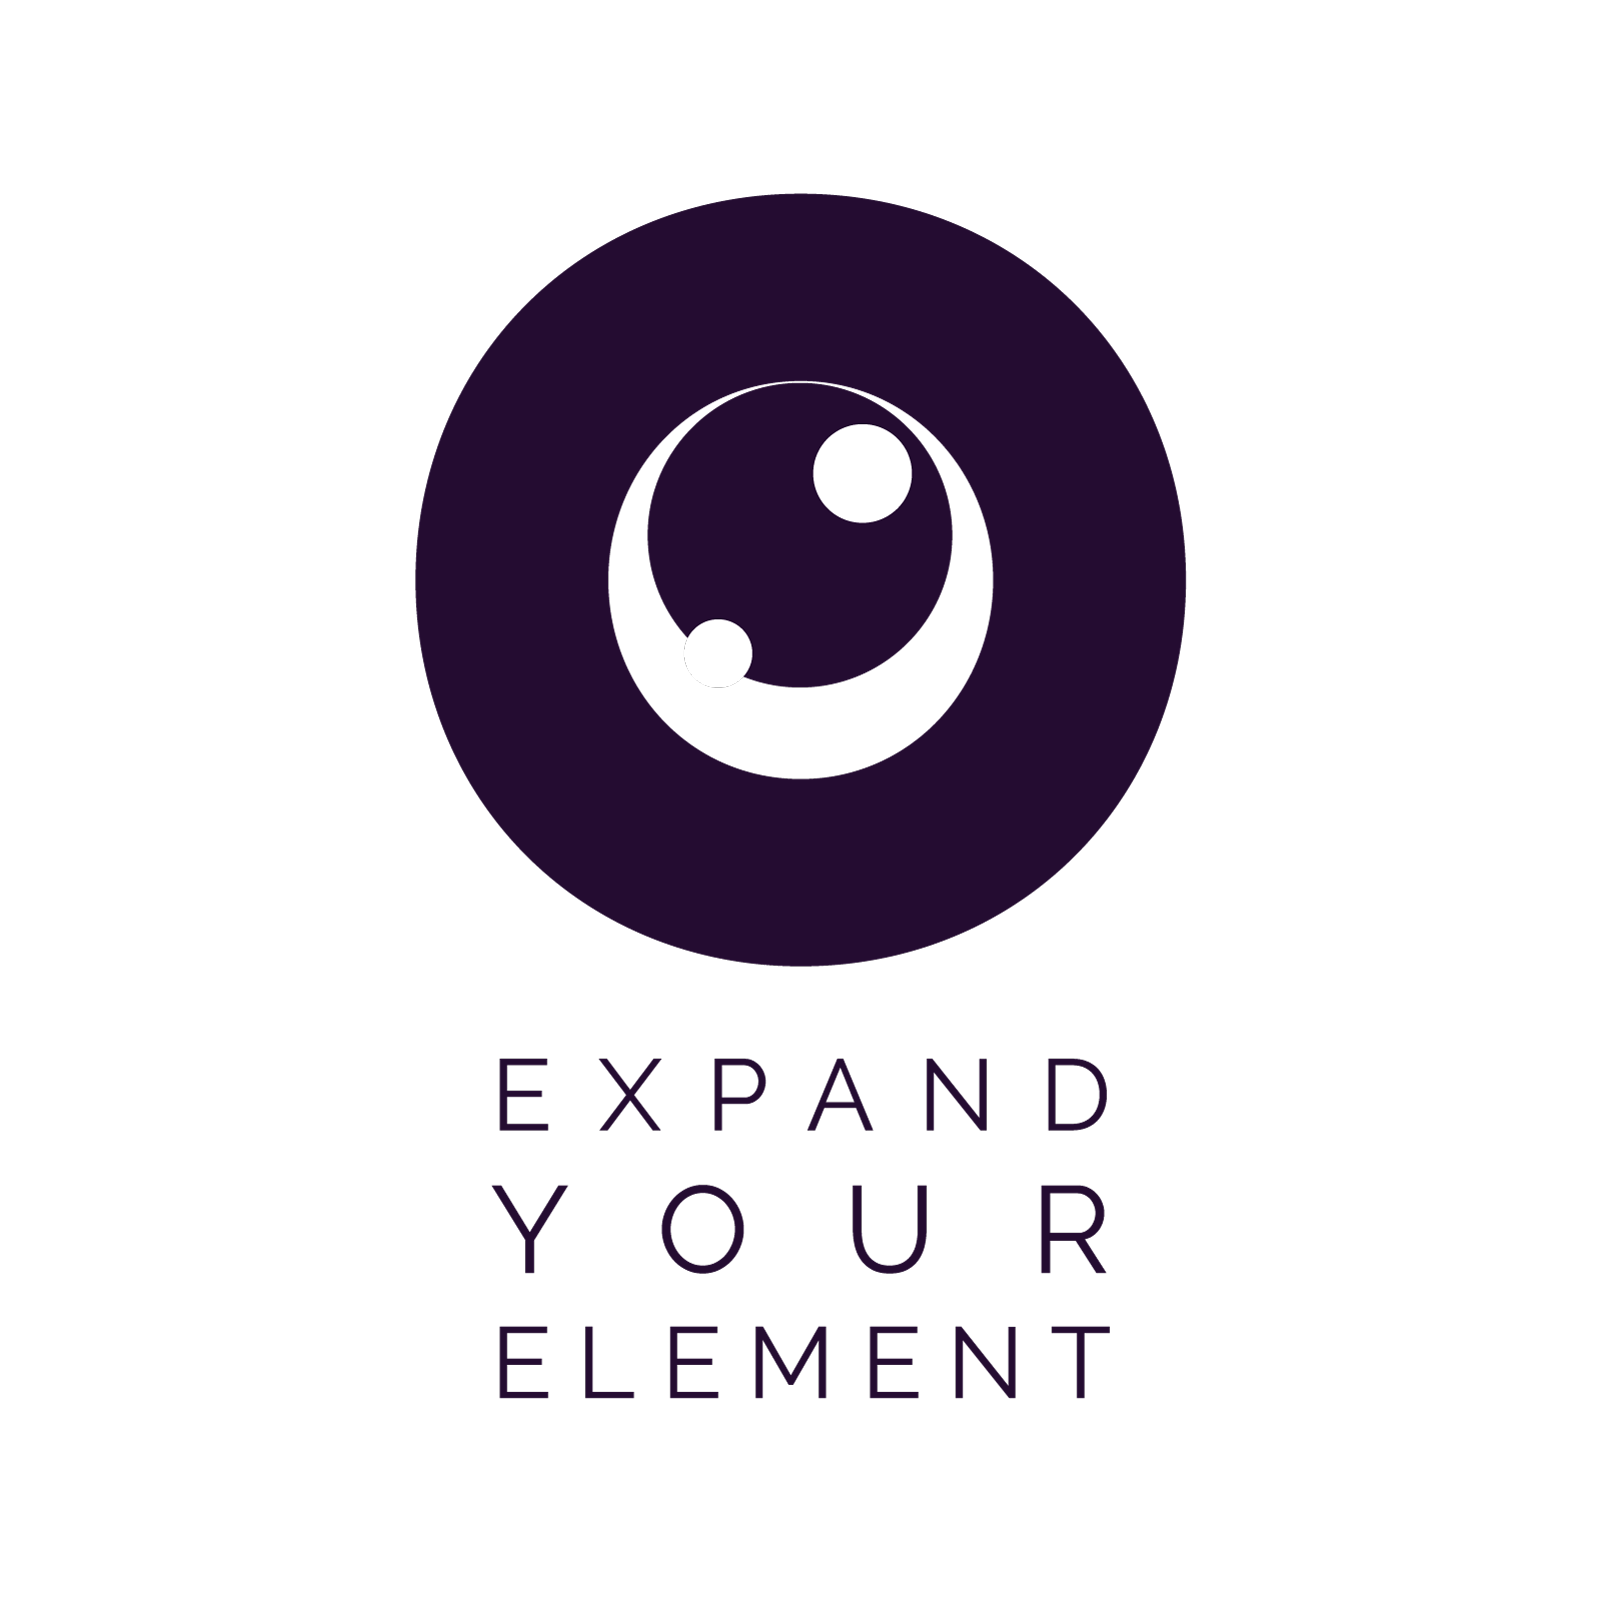 Expand Your Element